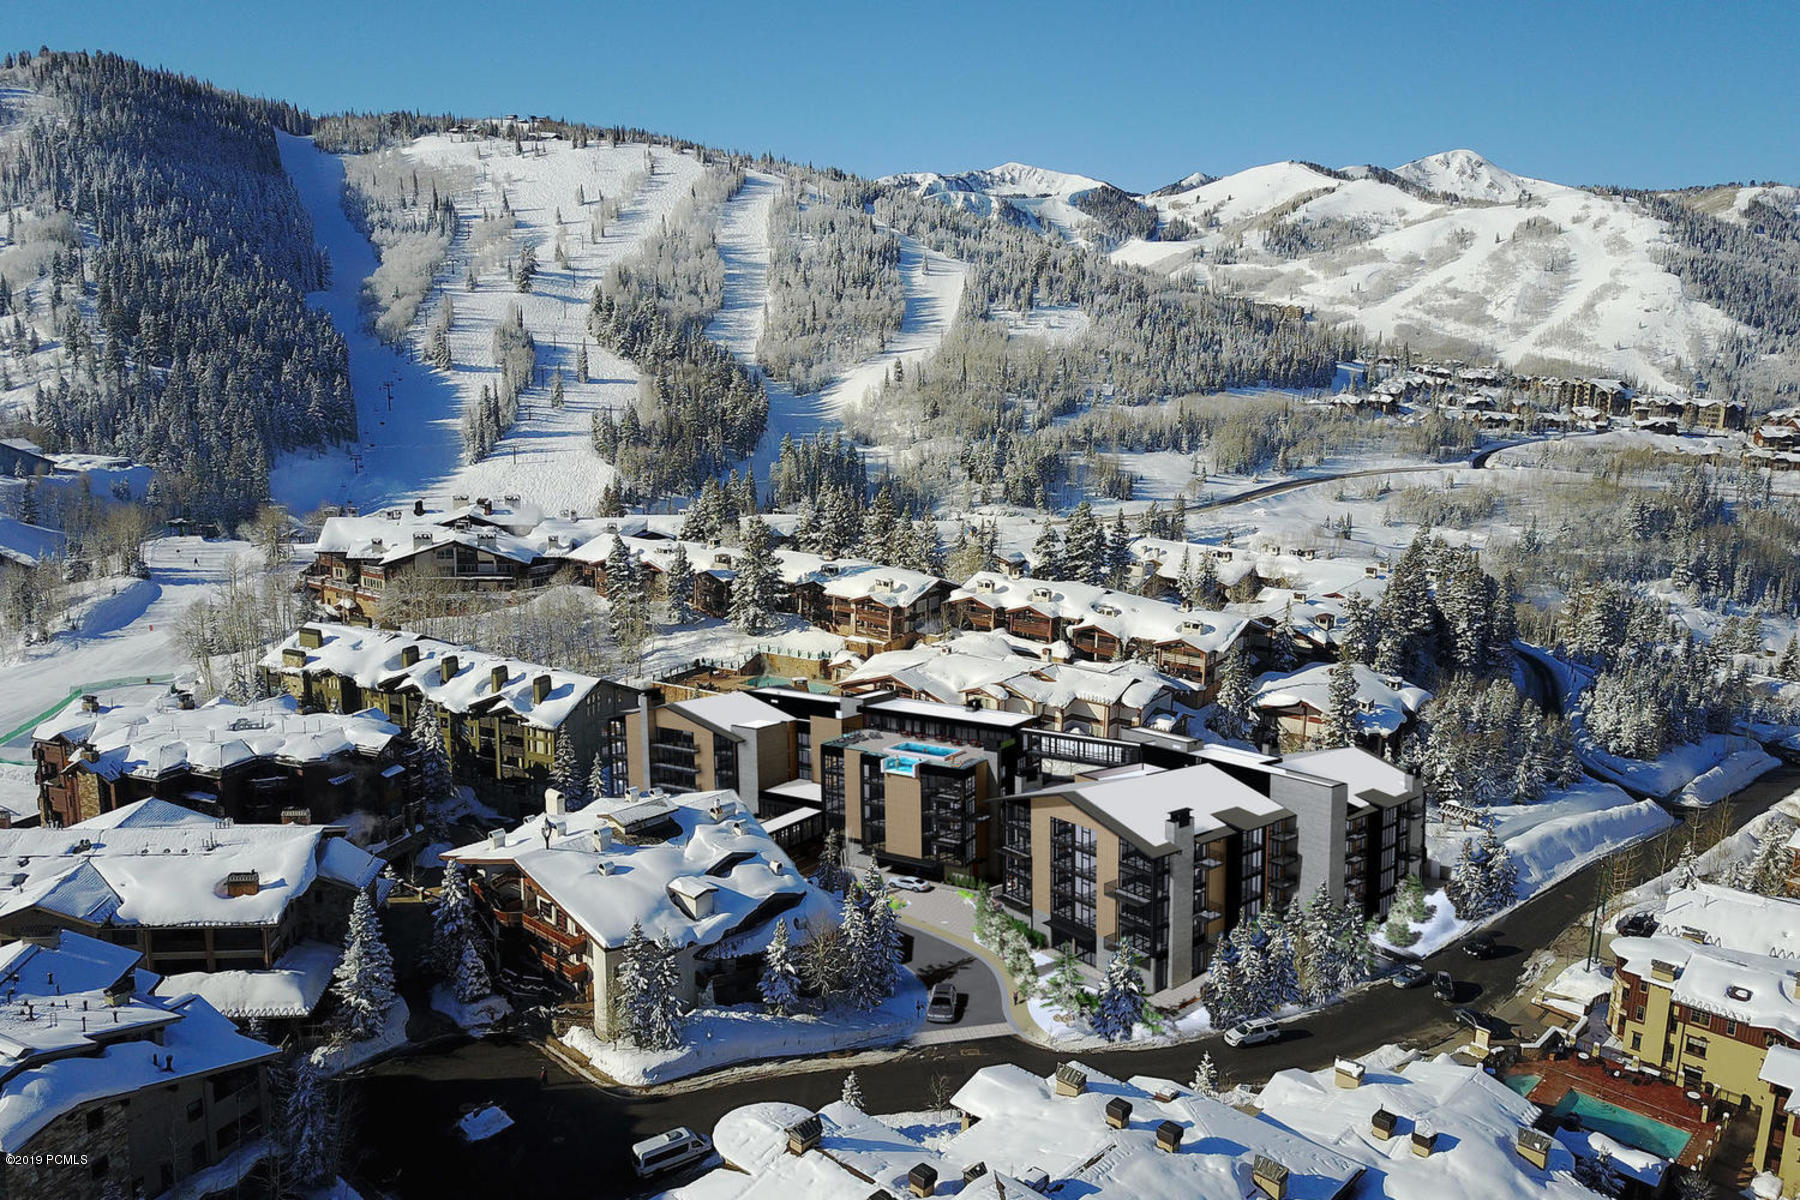 7520 Royal Street, Park City, Utah 84060, 4 Bedrooms Bedrooms, ,5 BathroomsBathrooms,Condominium,For Sale,Royal,20190109112430415765000000